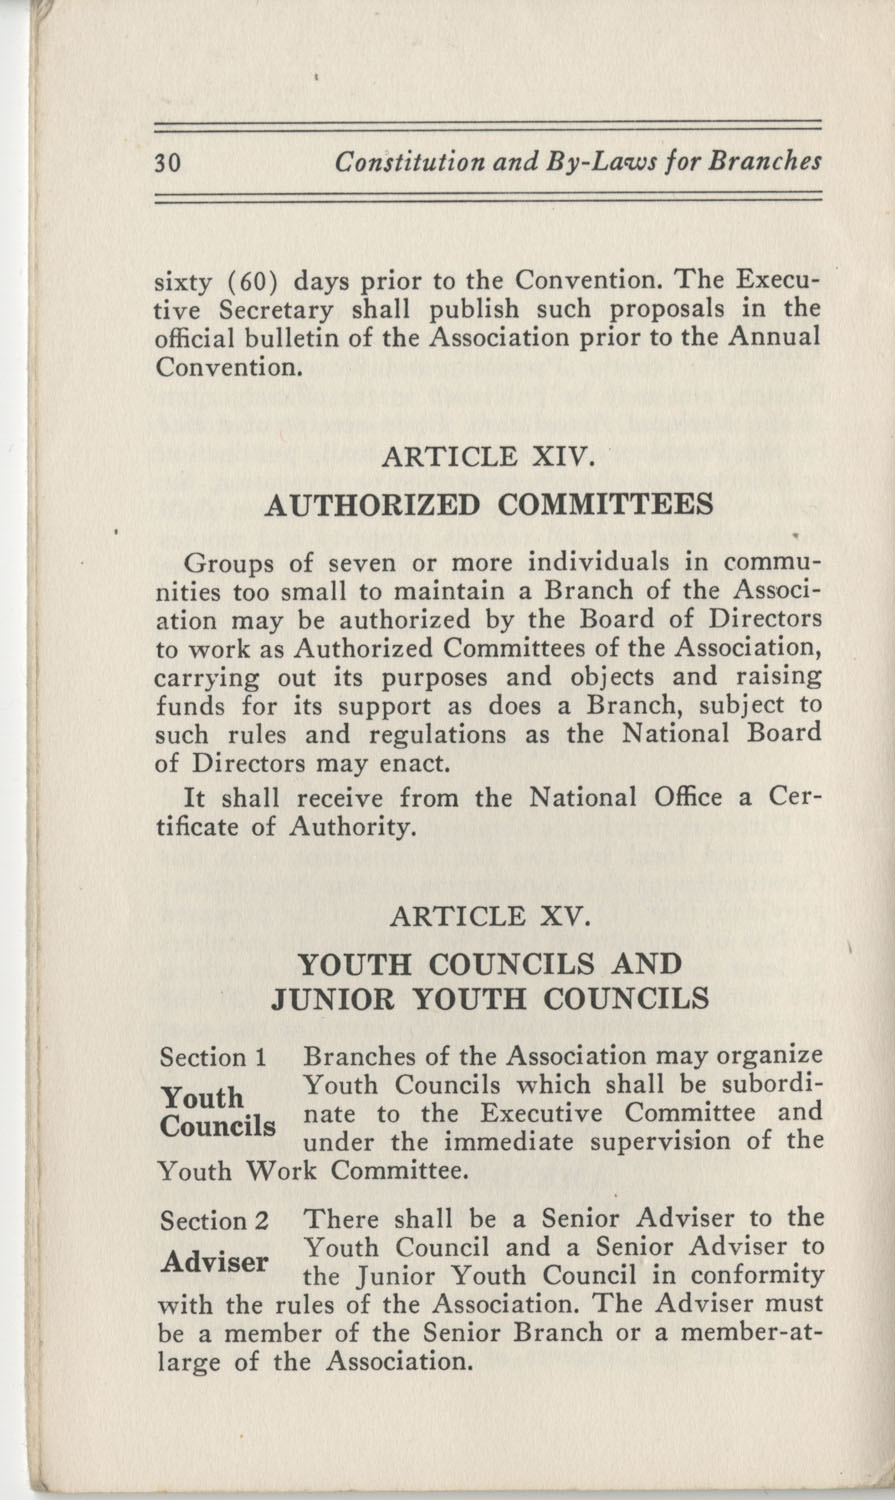 Constitutions and By-Laws, September 1960, Page 30